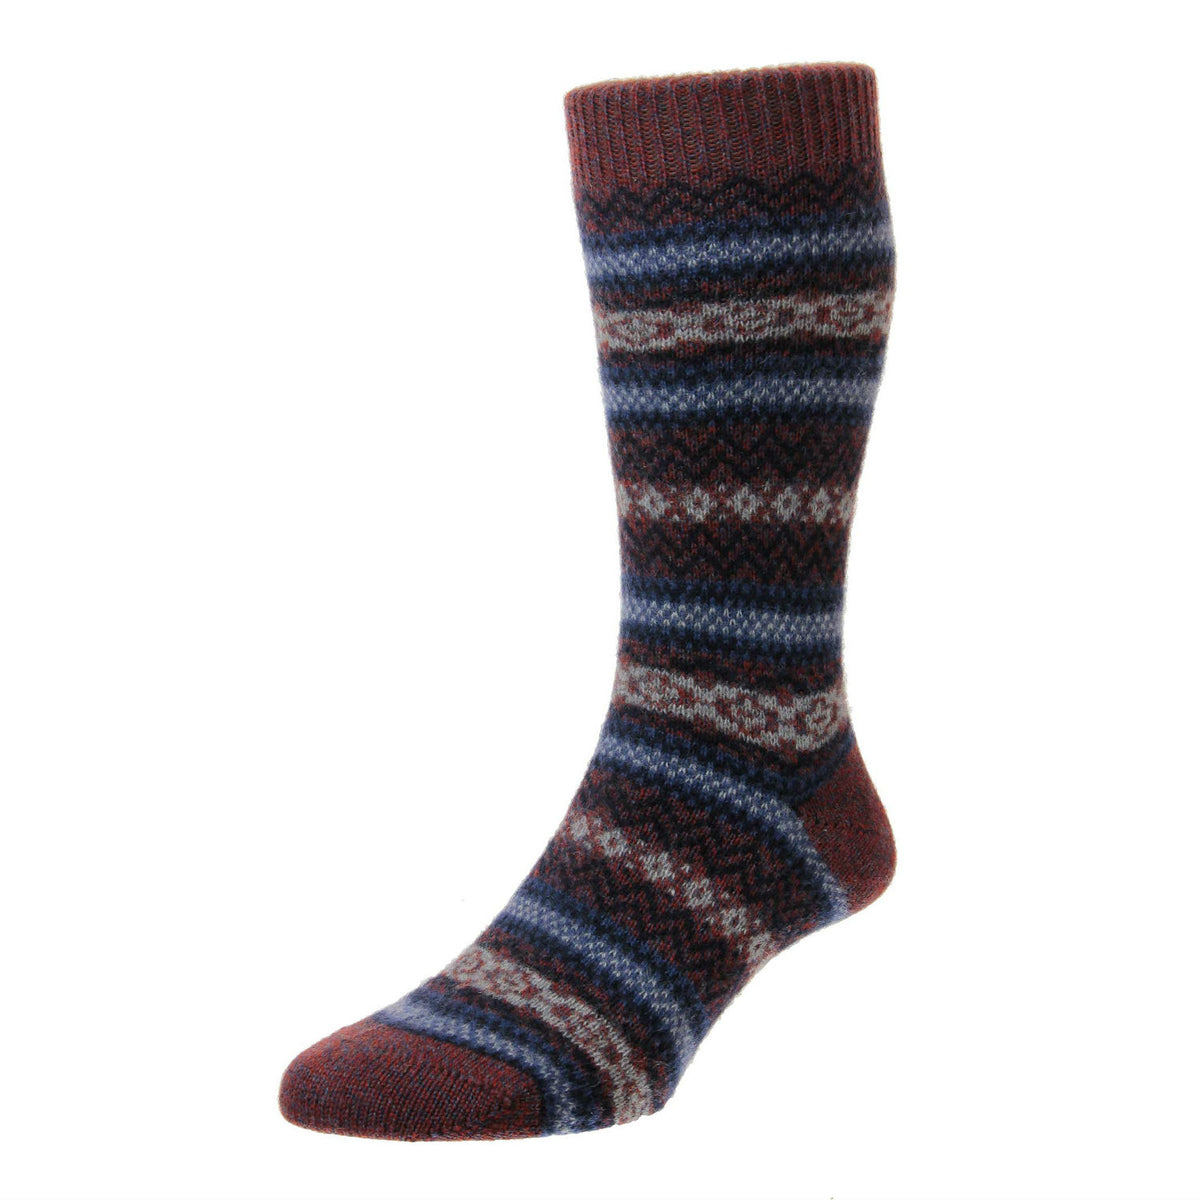 Rust Brown | Mens Cashmere Socks | Made in England | Fairisle Sock | buy now at The Cashmere Choice London